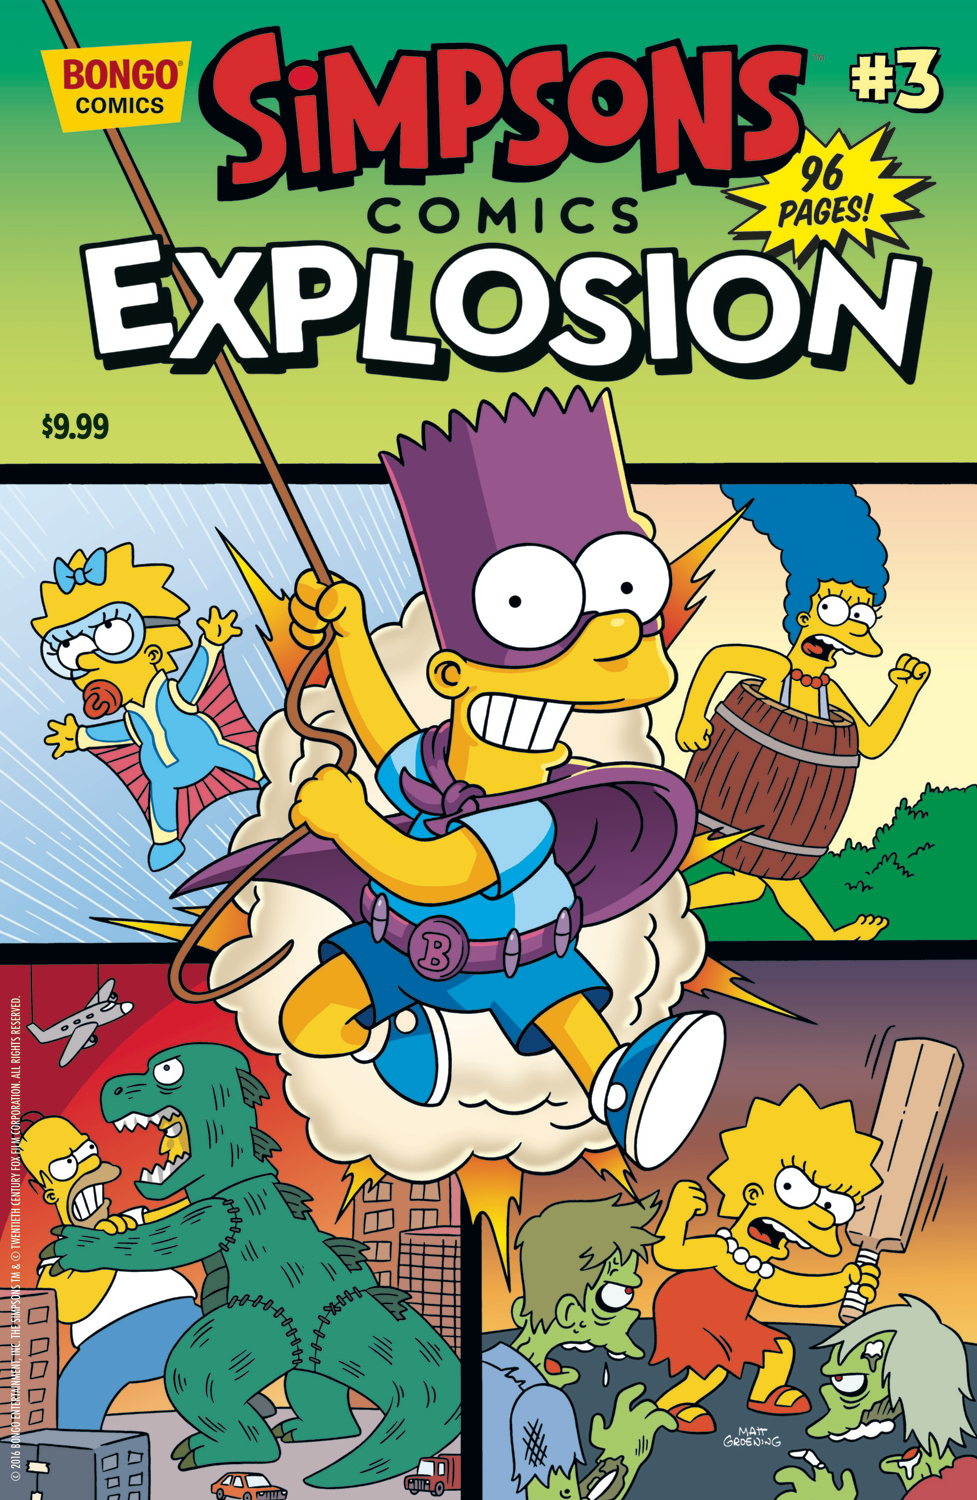 Simpsons comic galleries 95